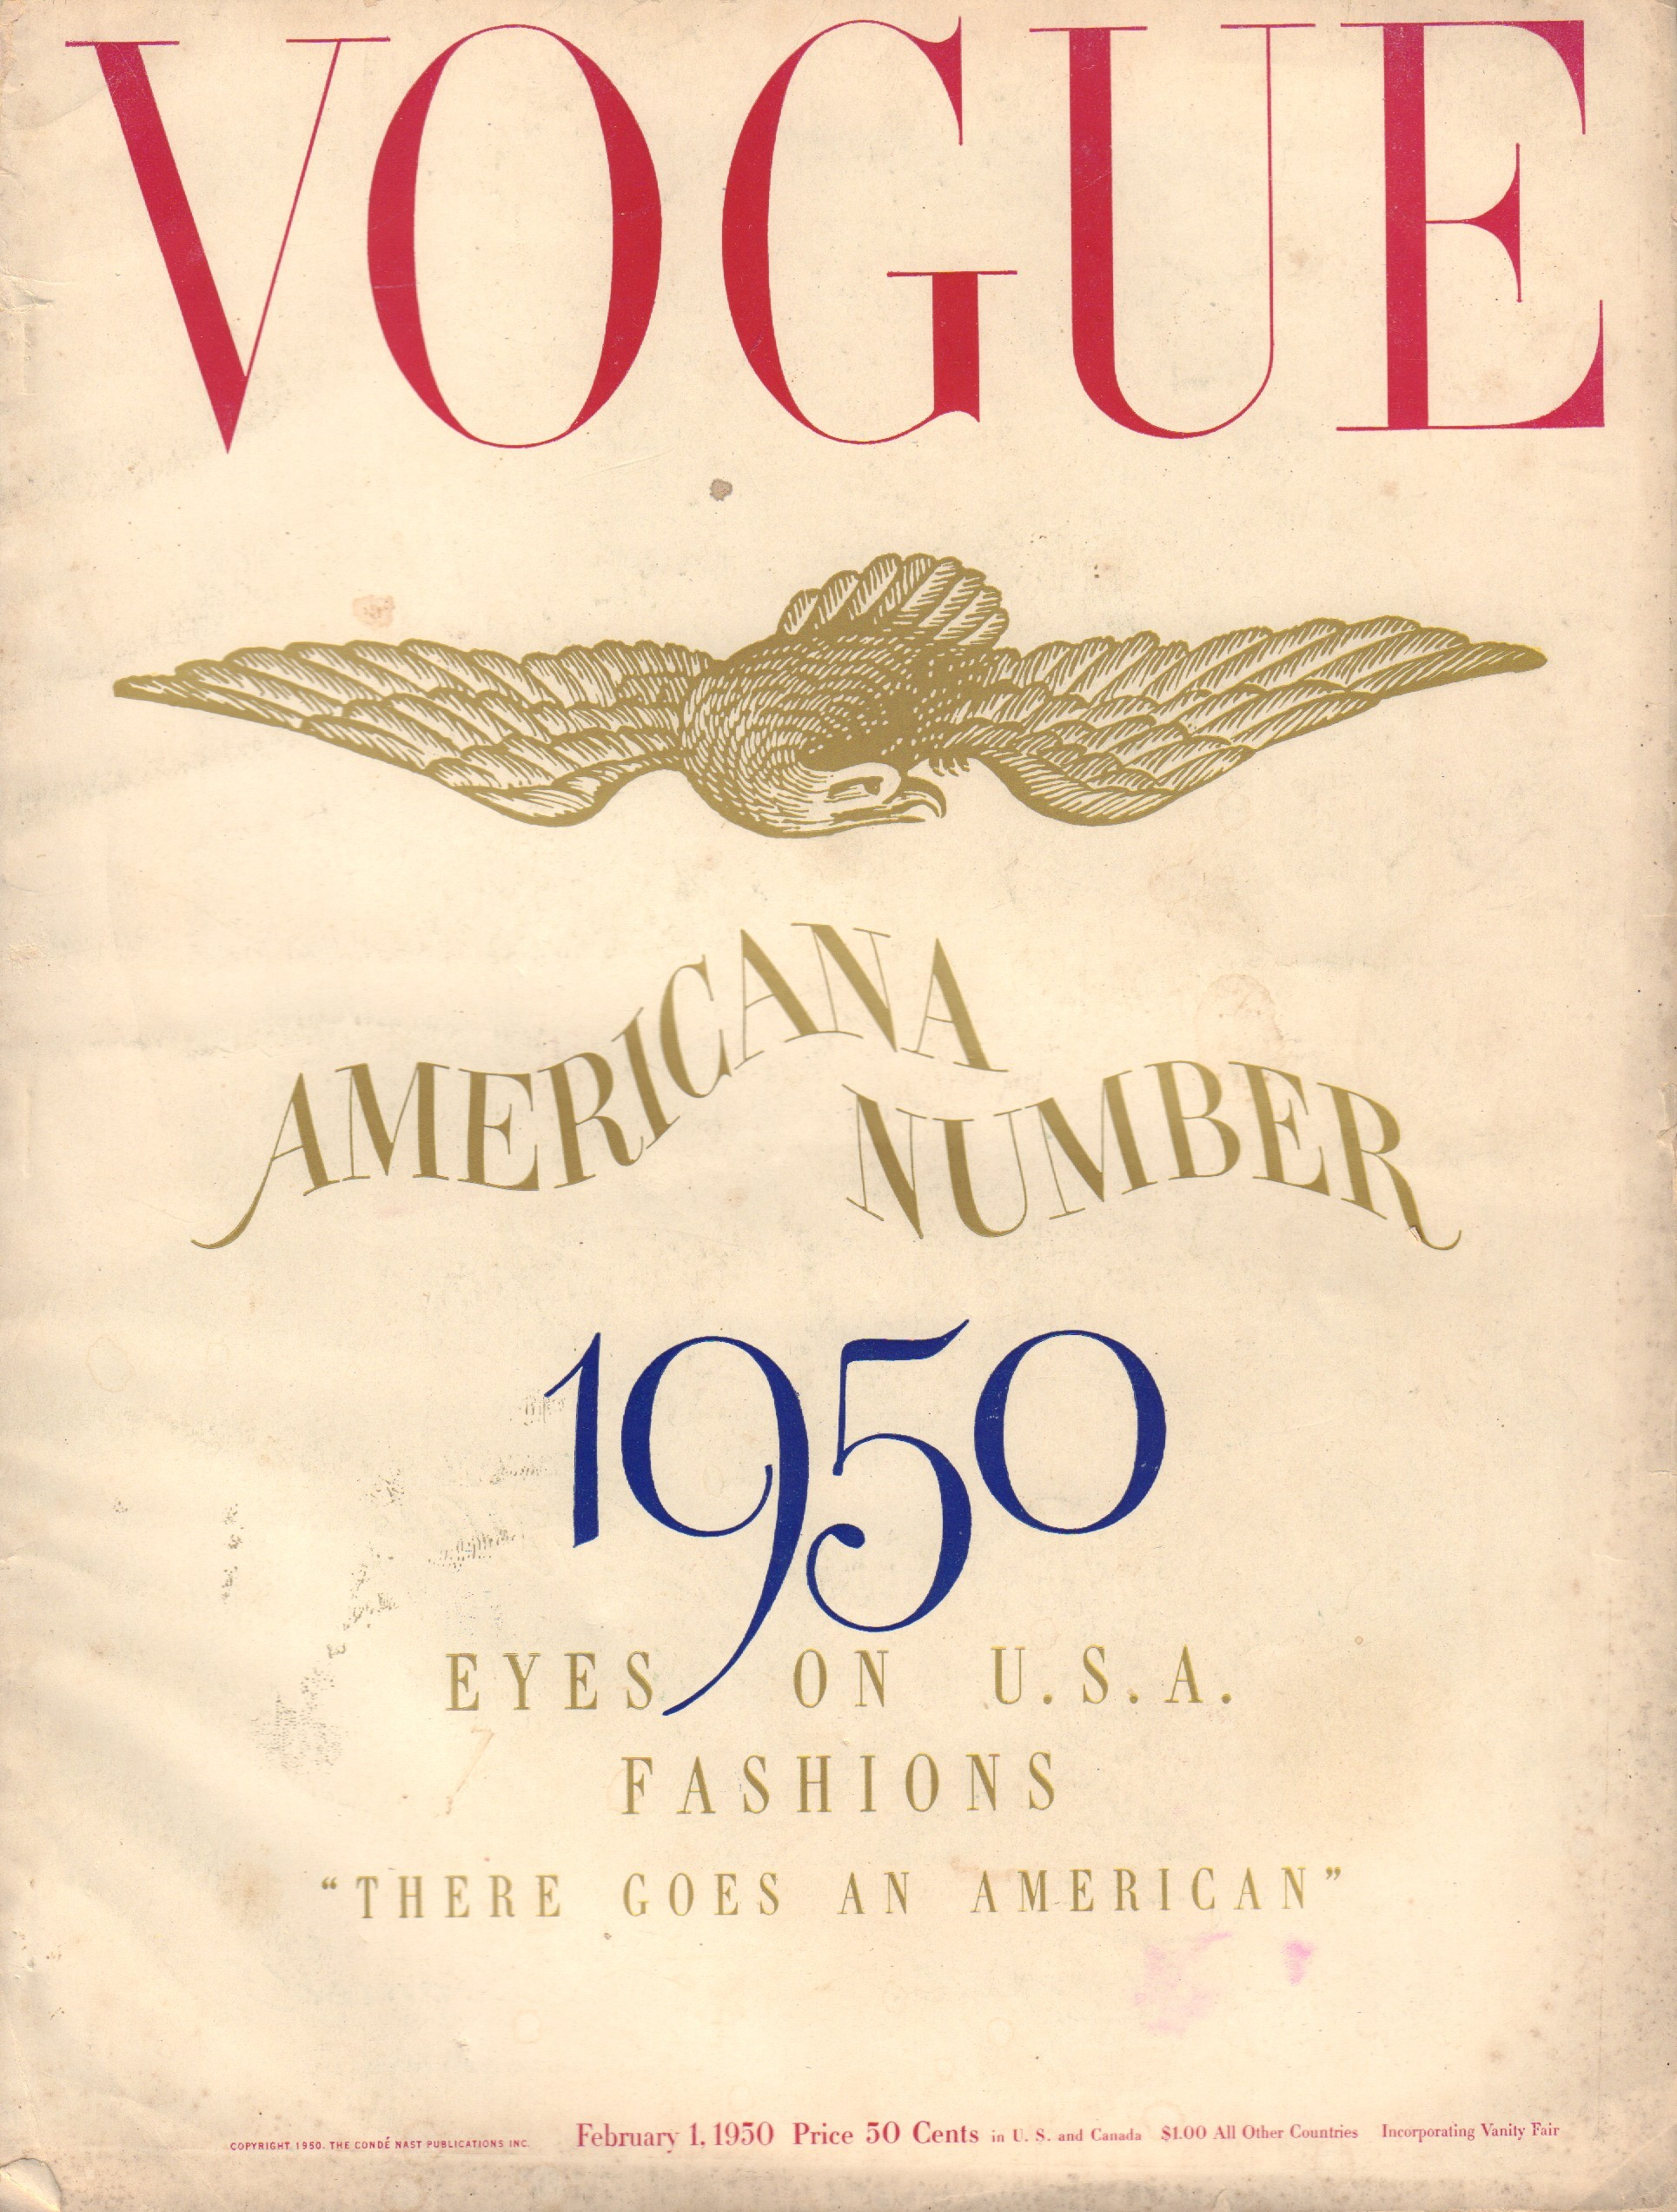 Image for Vogue February 1, 1950 - American Number 1950